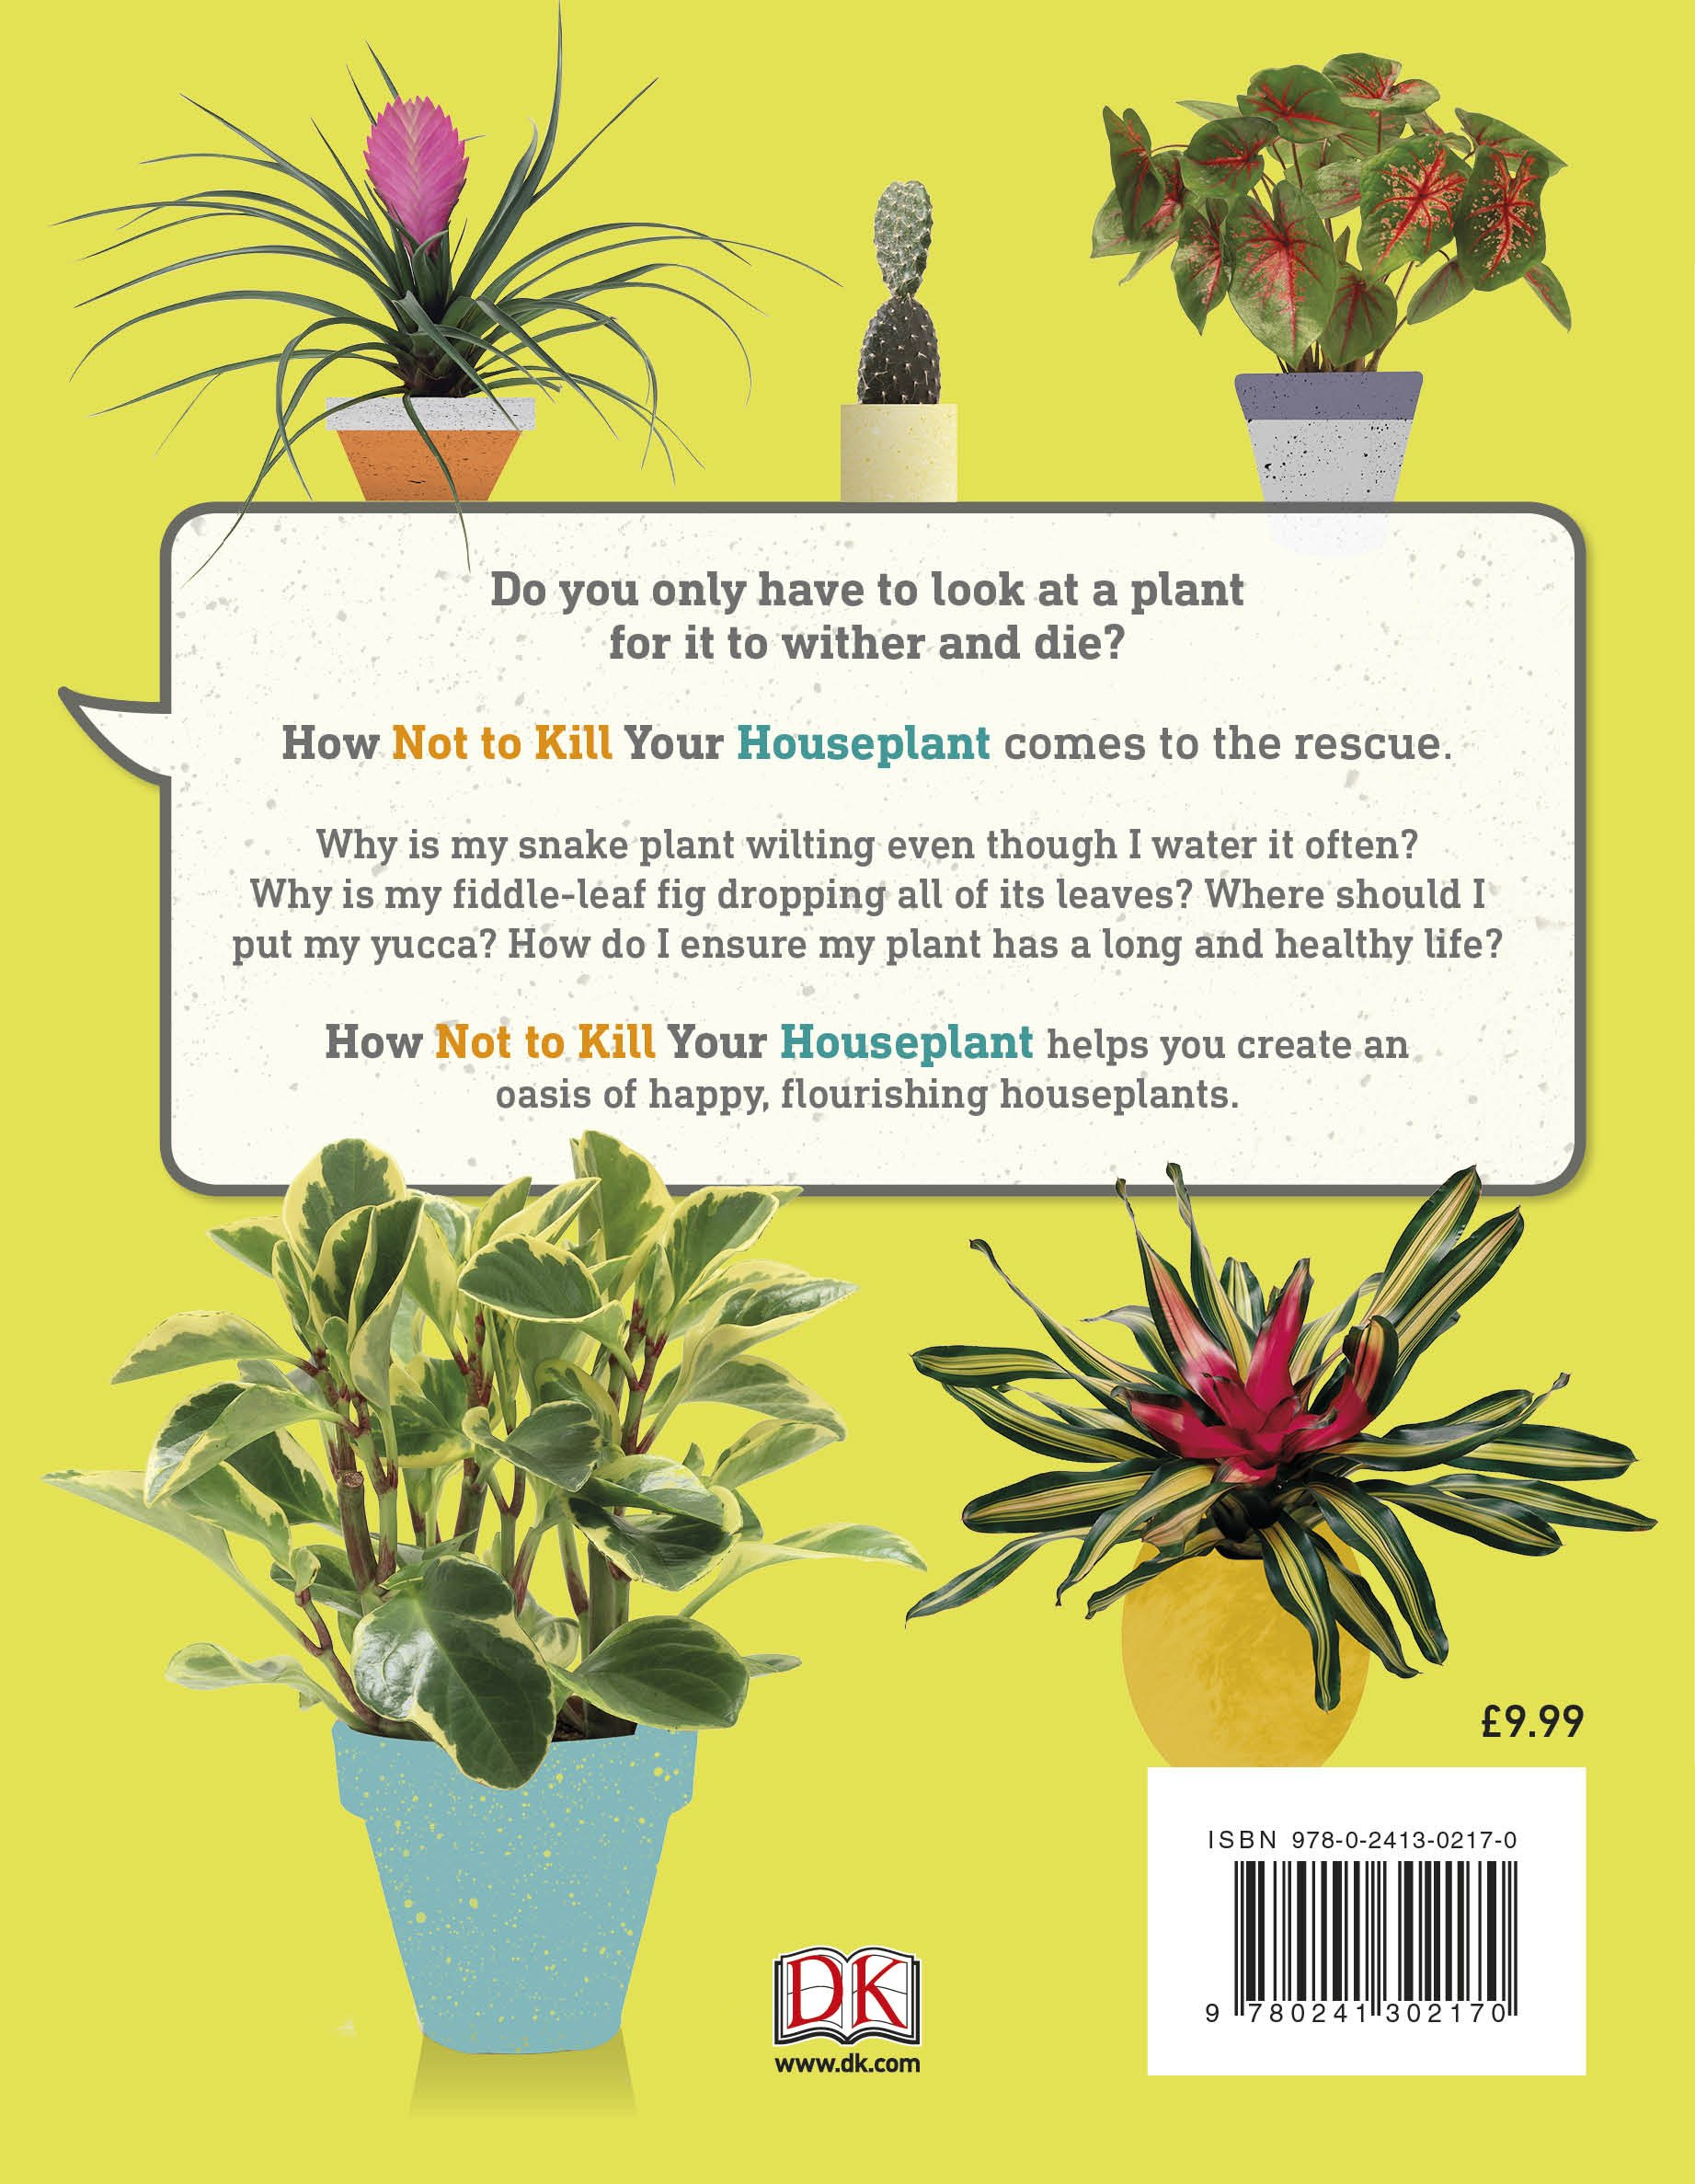 4a6da603c67 How Not to Kill Your Houseplant  Survival Tips for the Horticulturally  Challenged  Amazon.co.uk  Veronica Peerless  9780241302170  Books